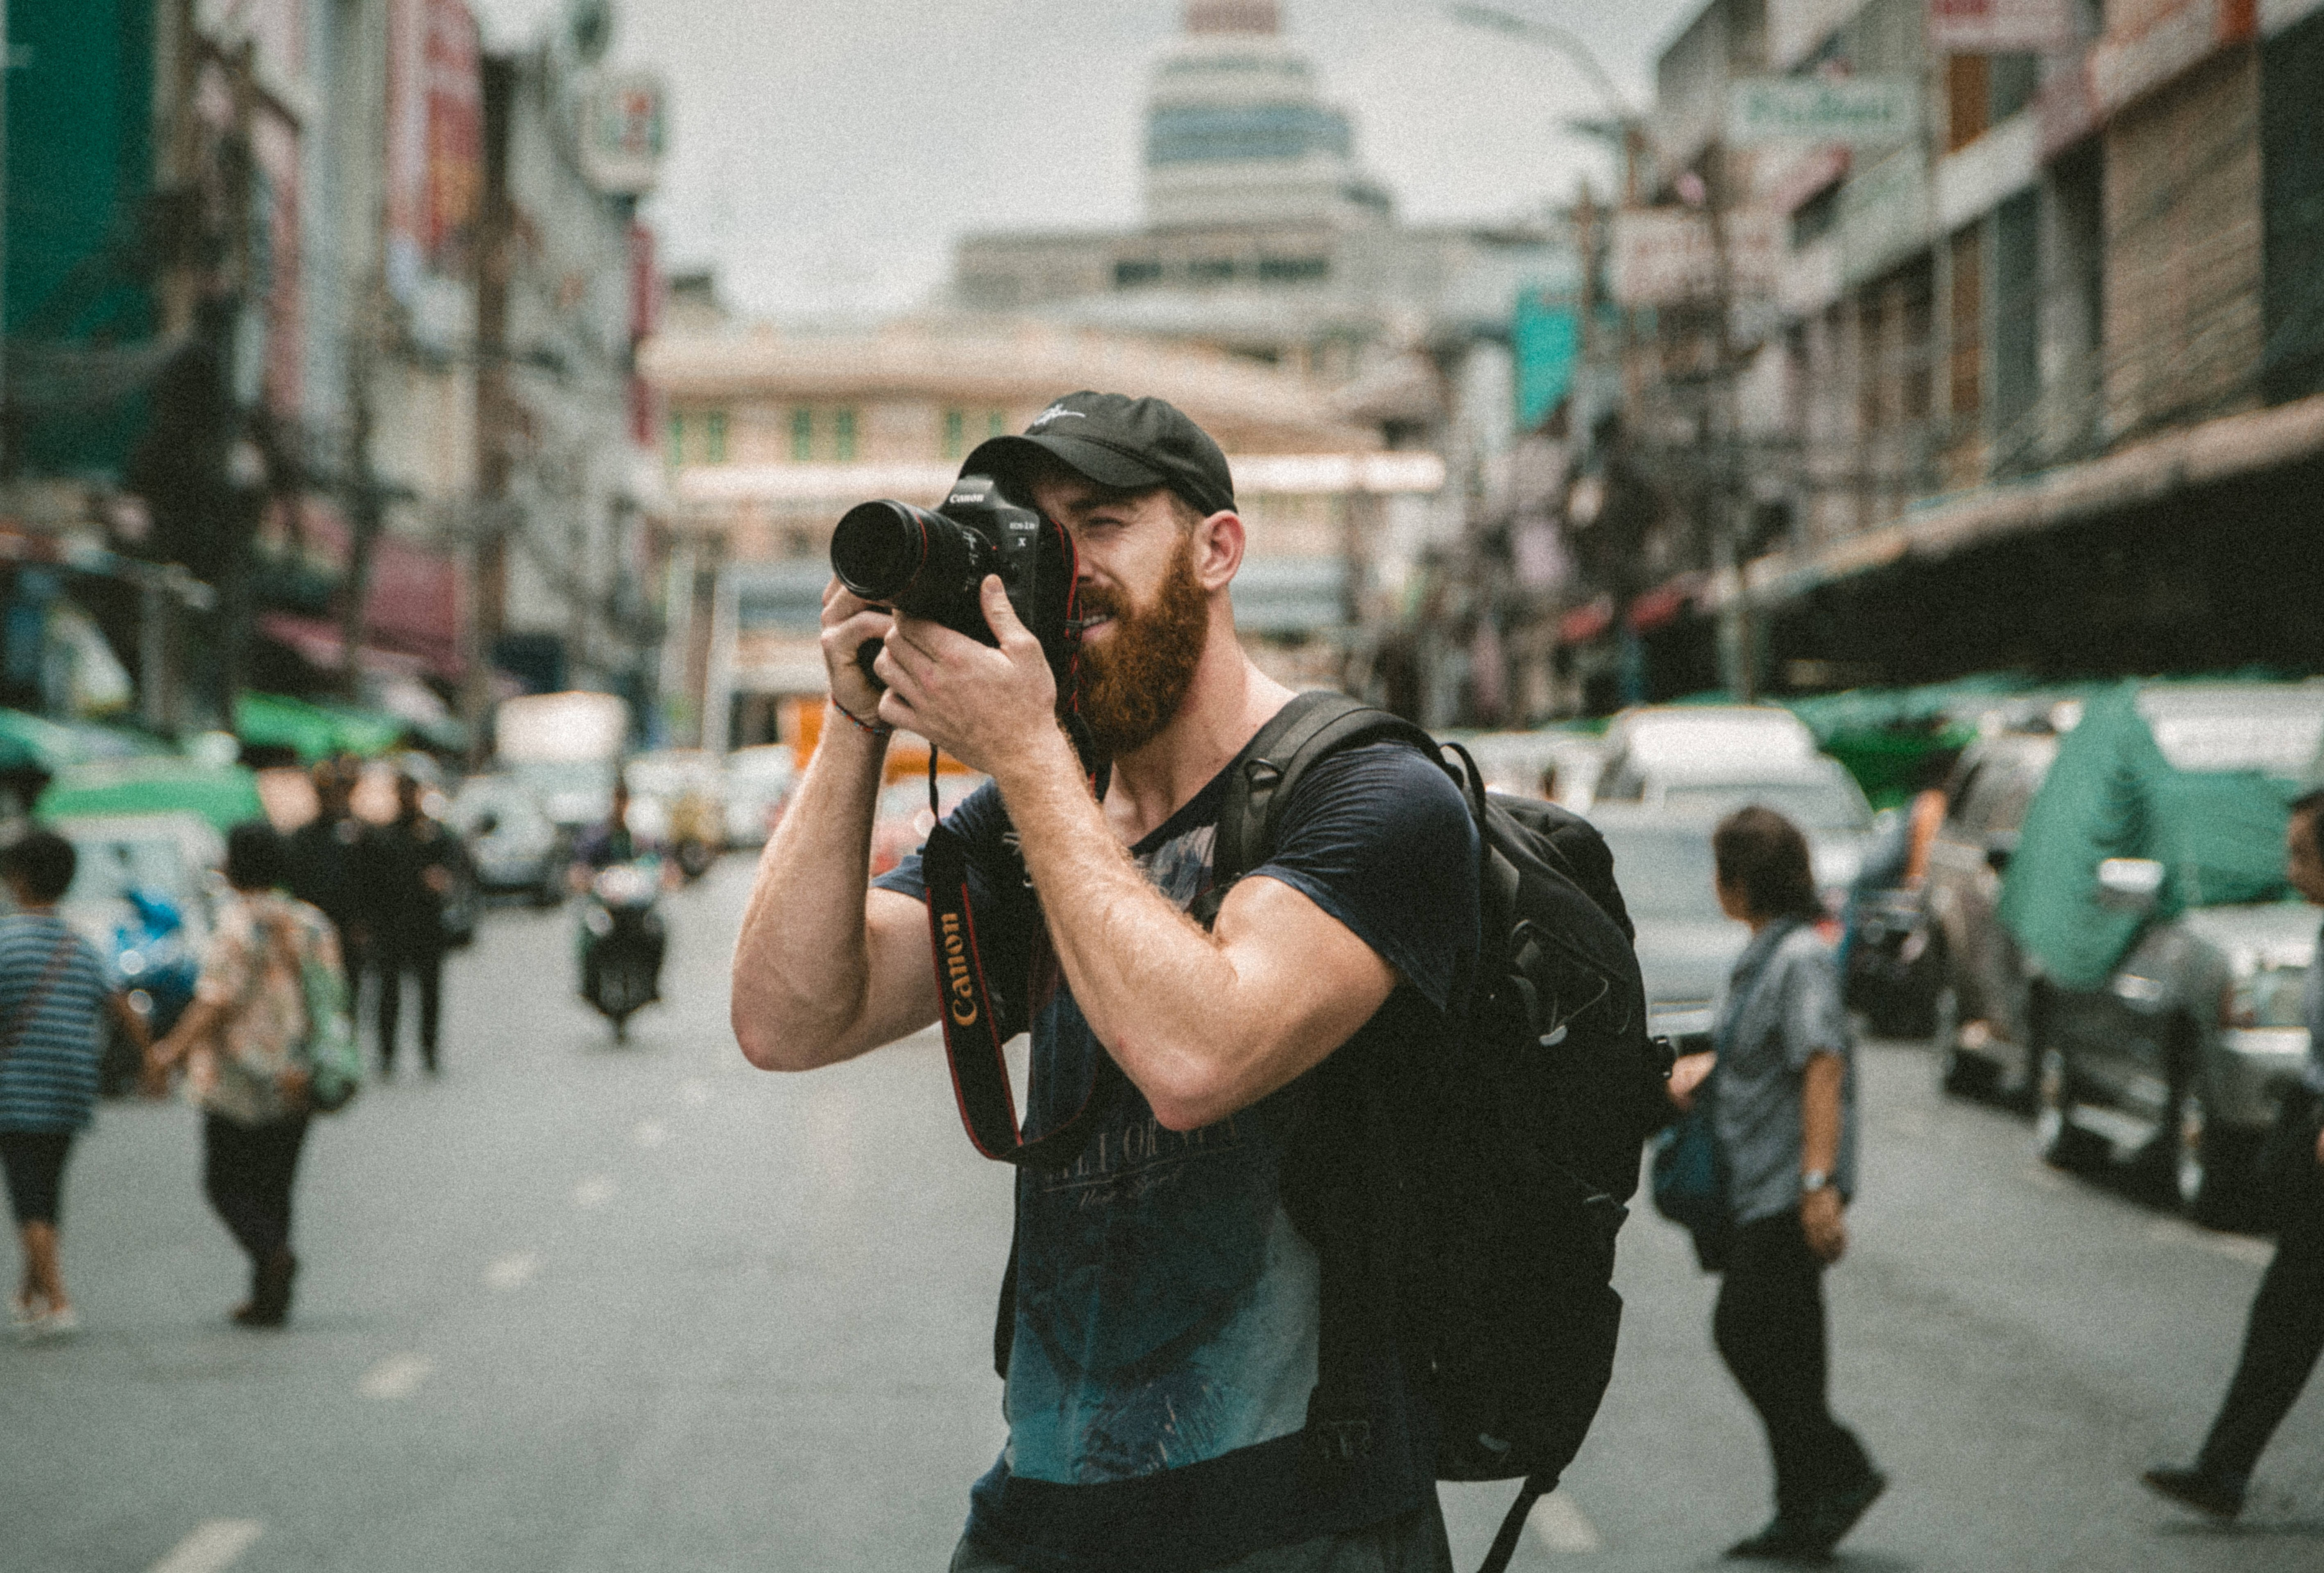 A Photographer on the streets